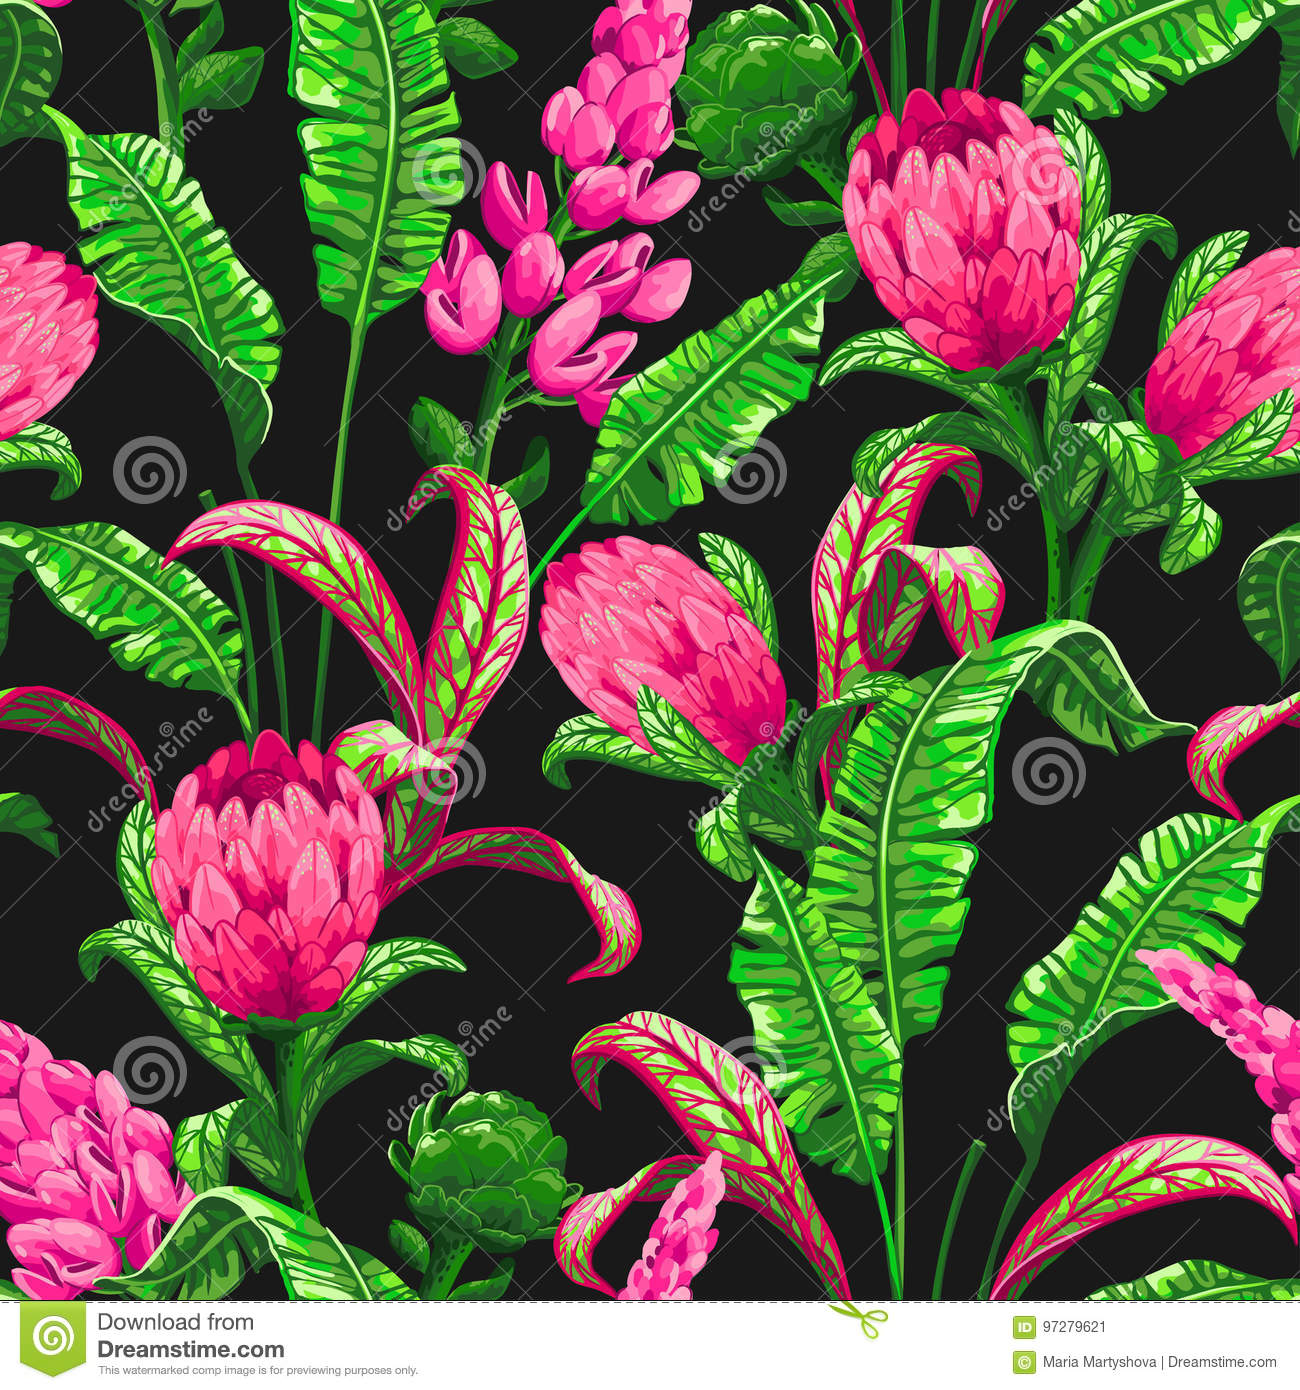 Tropical Seamless Pattern With Palm Leaves Stock Vector Illustration Of Green Flower 97279621 Find the greates flower wallpapers on pexels which are free to download and use as background images on your mac computer, macbook and windows computer. https www dreamstime com stock illustration tropical seamless pattern palm leaves flowers background vector jungle exotic flowers trendy style image97279621